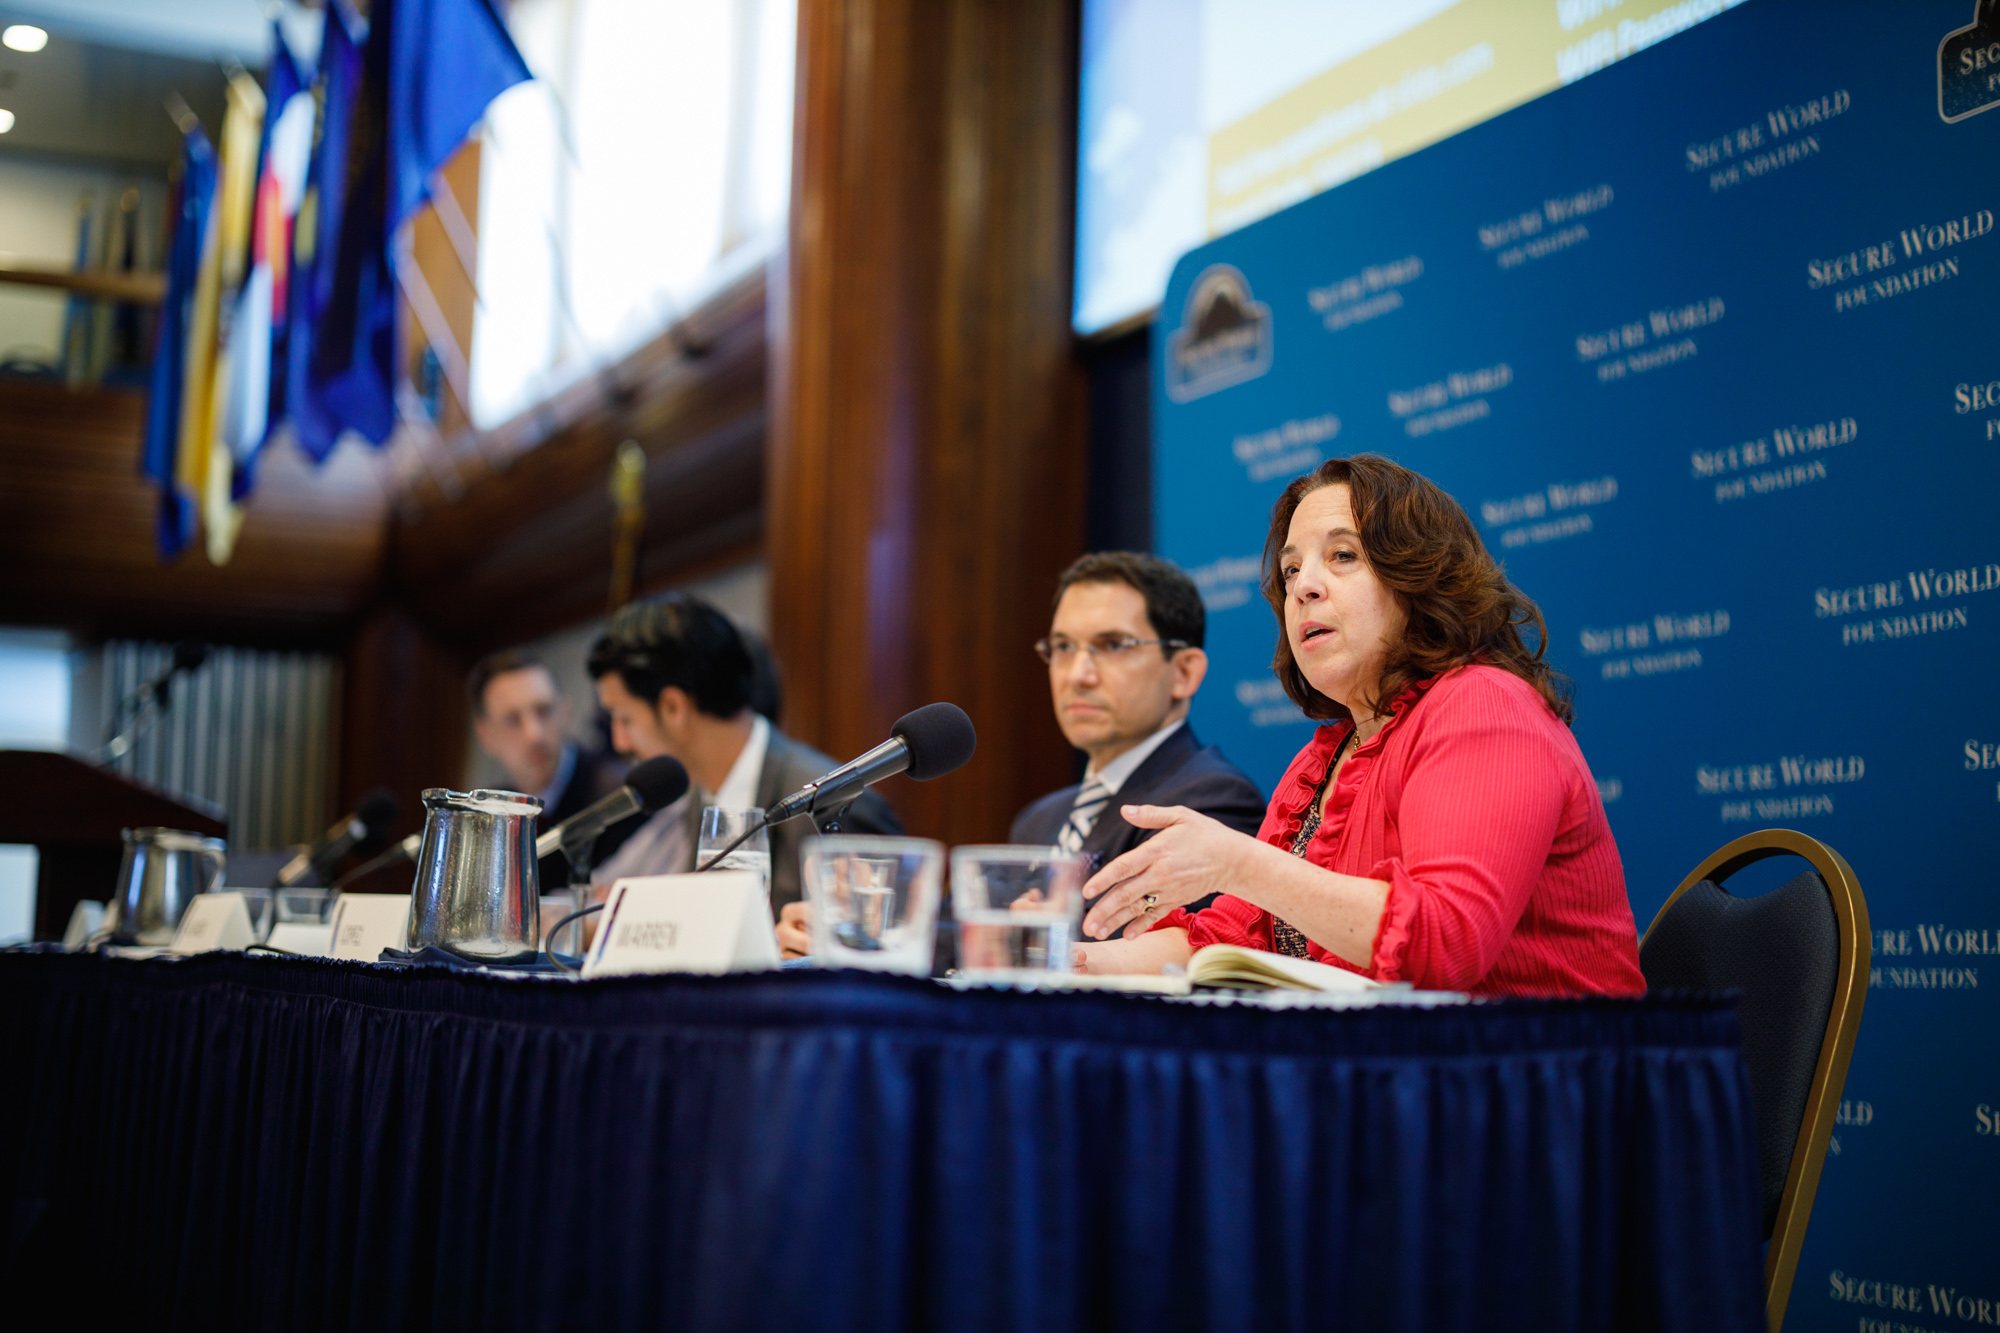 073 - February 12th 2019 Religious Freedom Institute at National Press Club - Photo Nathan Mitchell.jpg